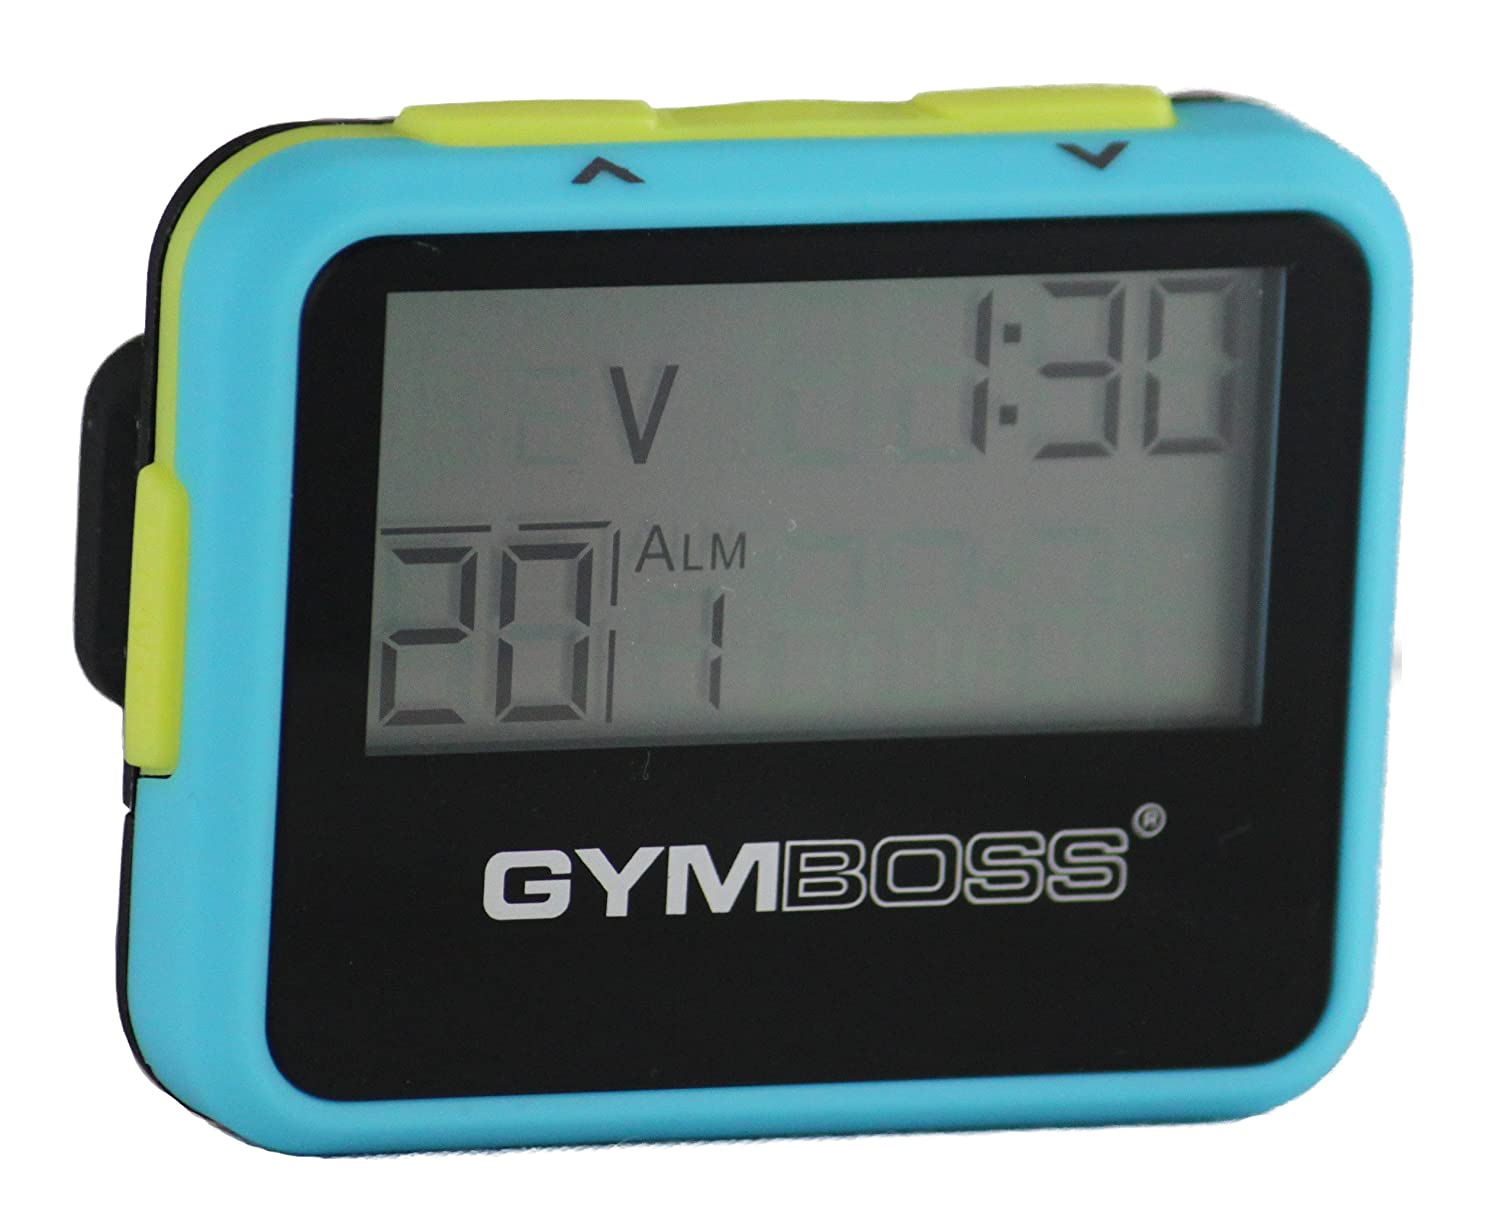 Gymboss Interval Timer and Stopwatch - LIGHT BLUE / YELLOW SOFTCOAT LTBLUYL